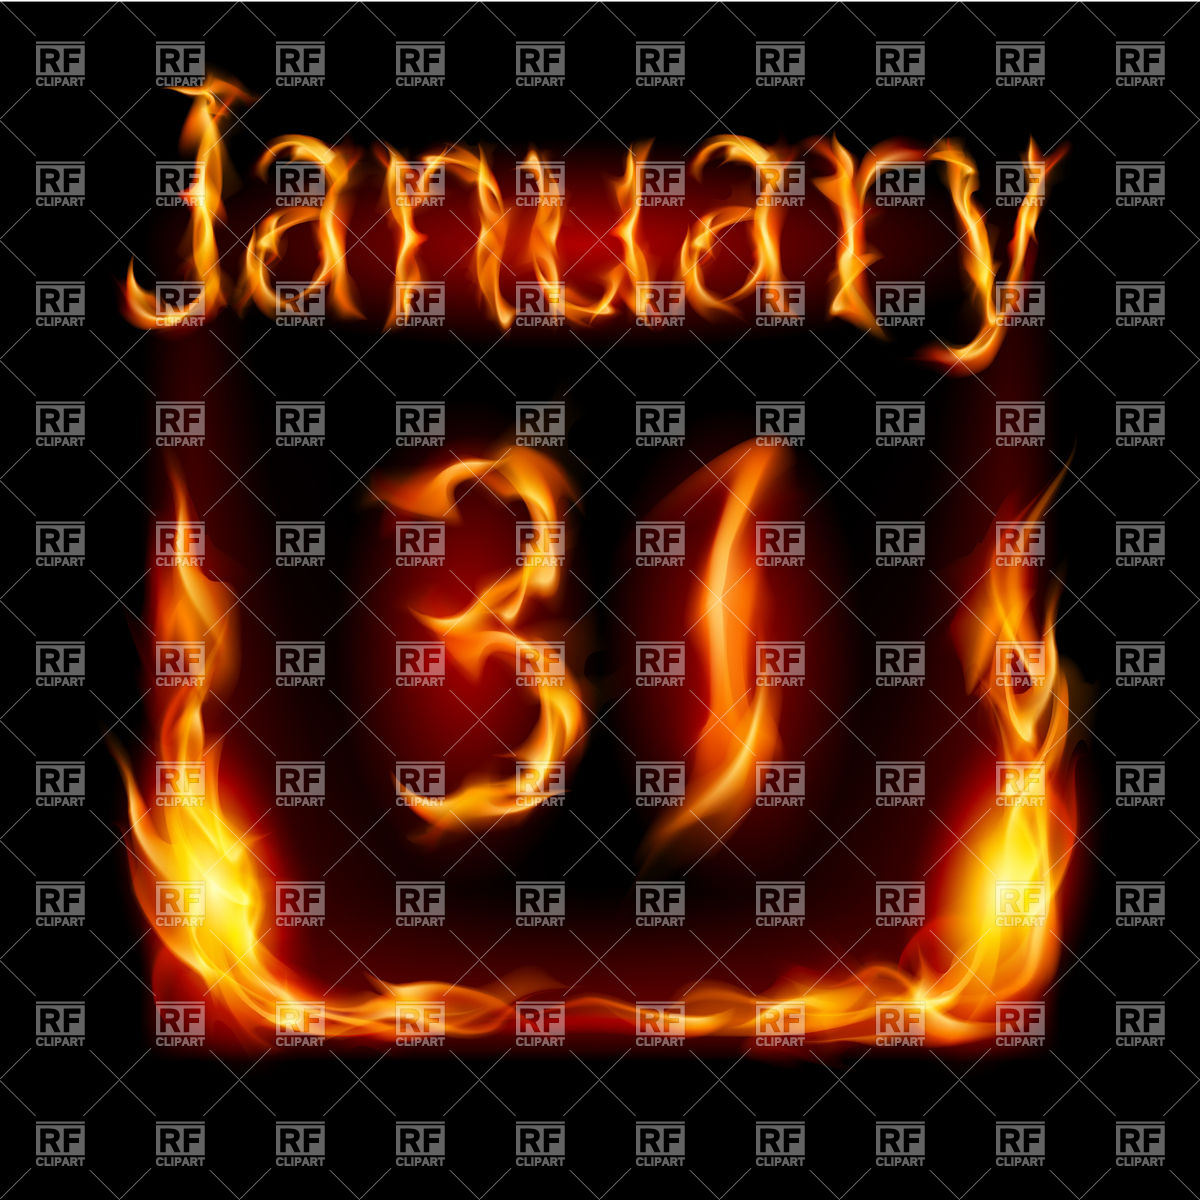 January 31 calendar clipart png transparent January 31 calendar clipart - ClipartFox png transparent